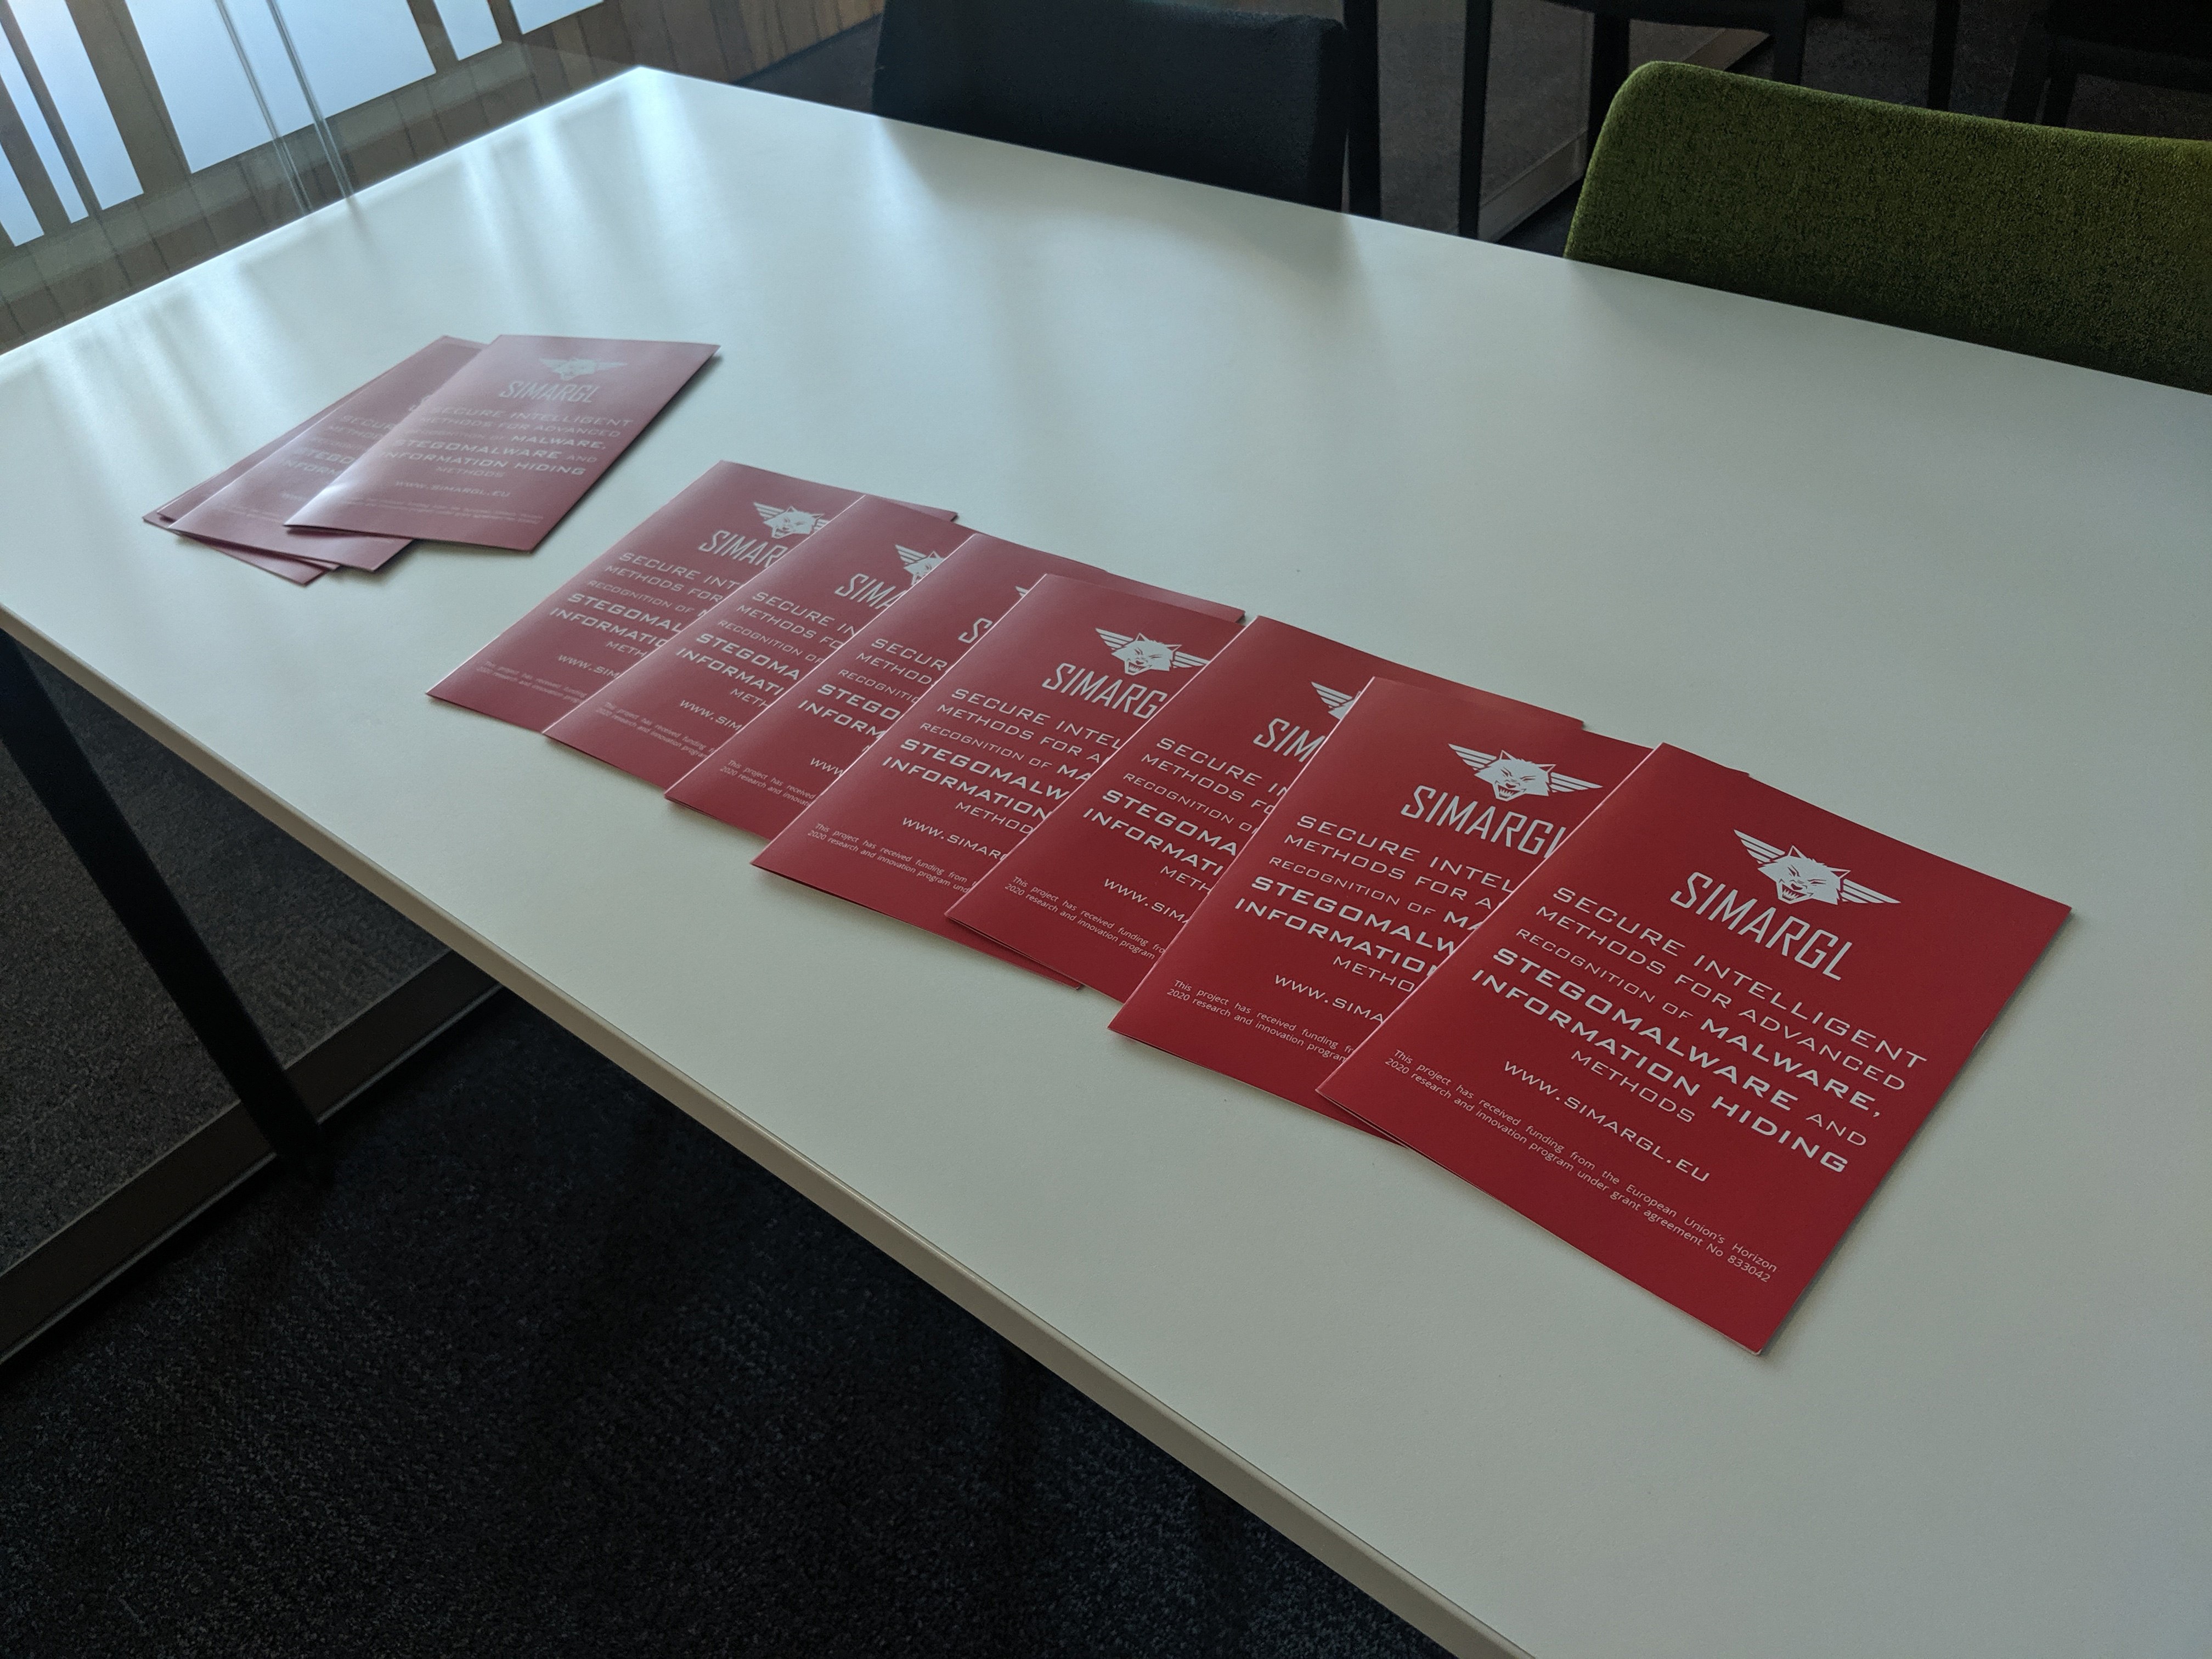 SIMARGL leaflets at the CUING workshop